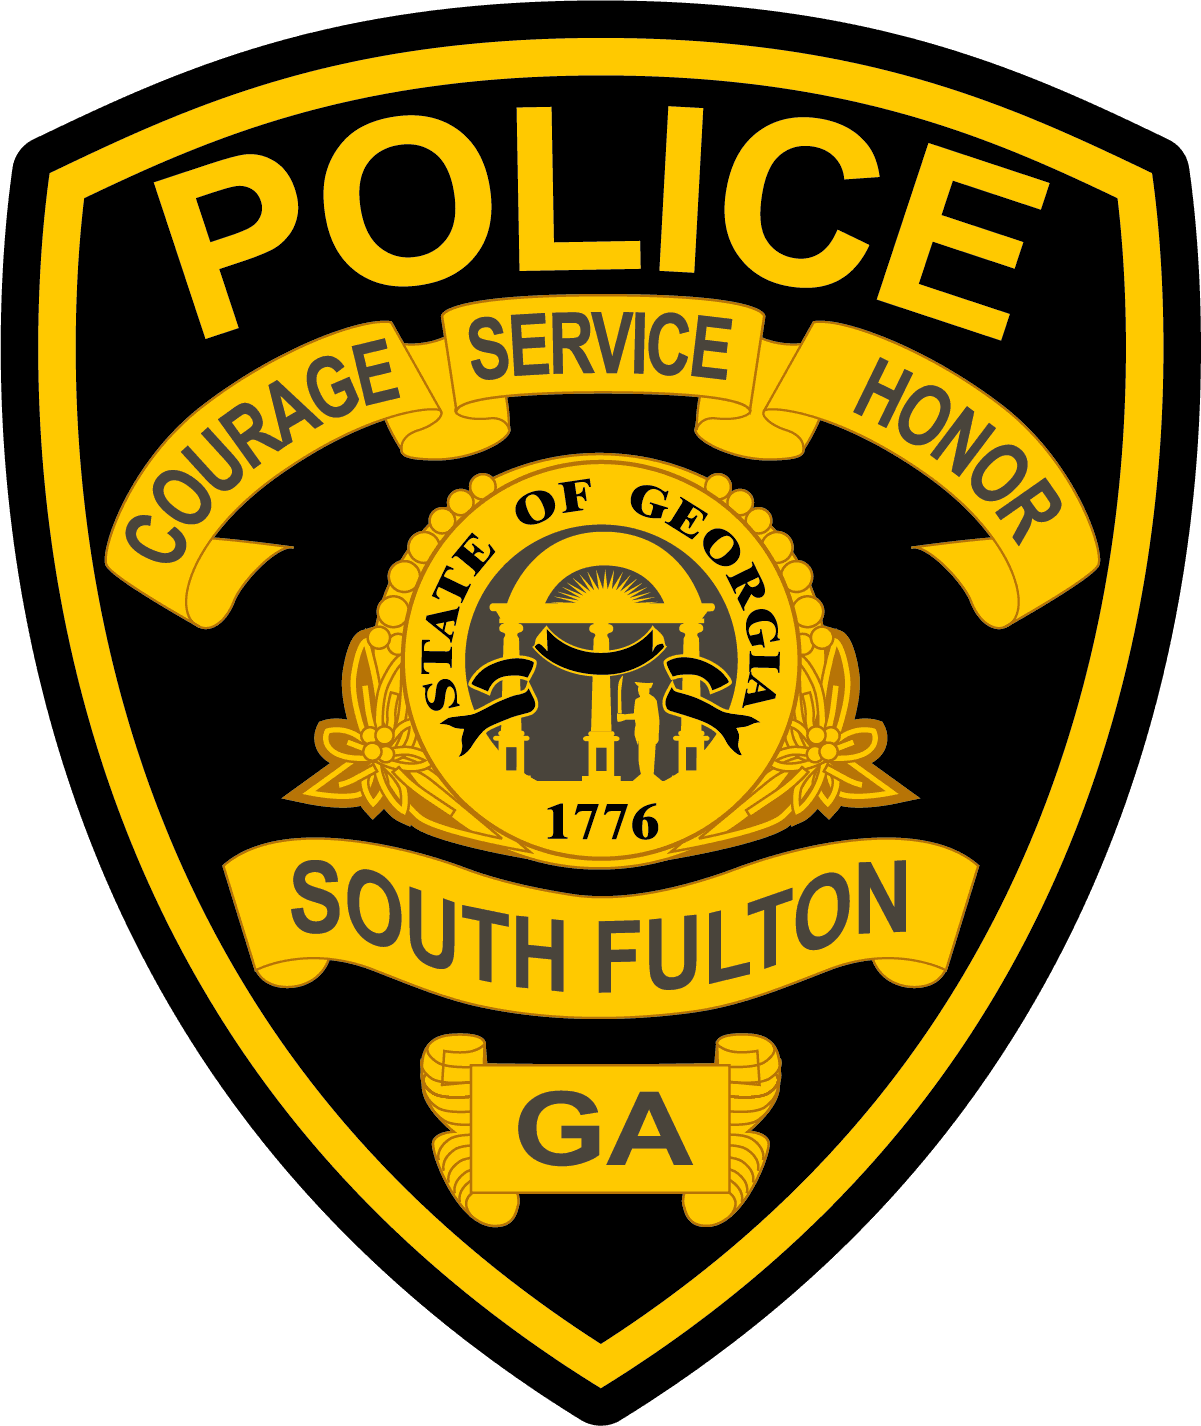 South Fulton Police Department GA Shoulder Patch V3 Georgia AR